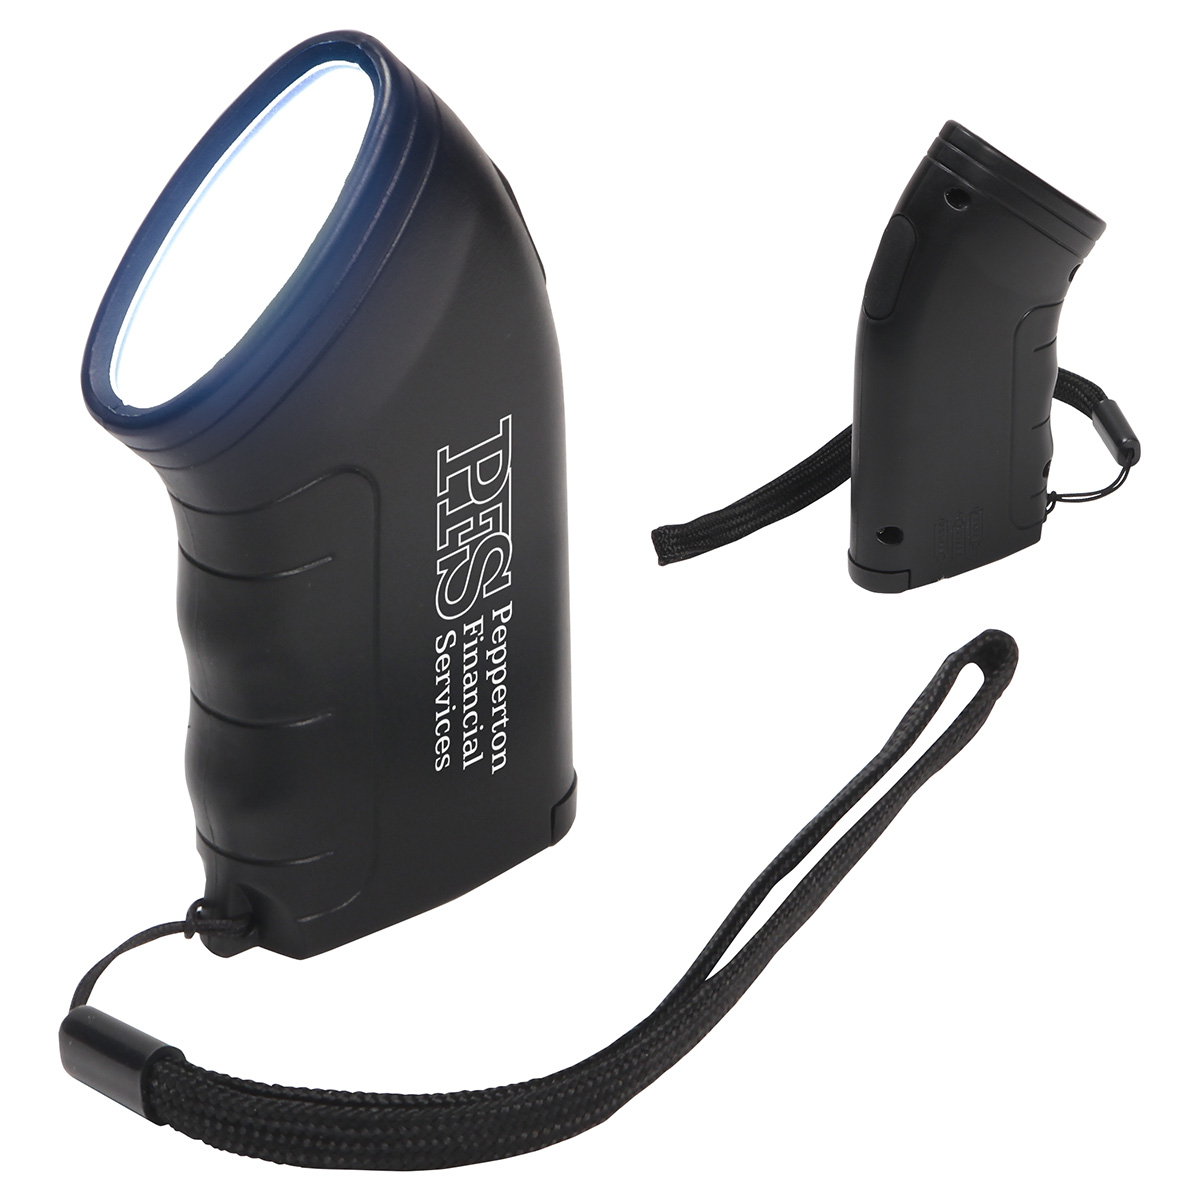 Easy-Grip Pocket Torch, WLT-EG18, 1 Colour Imprint